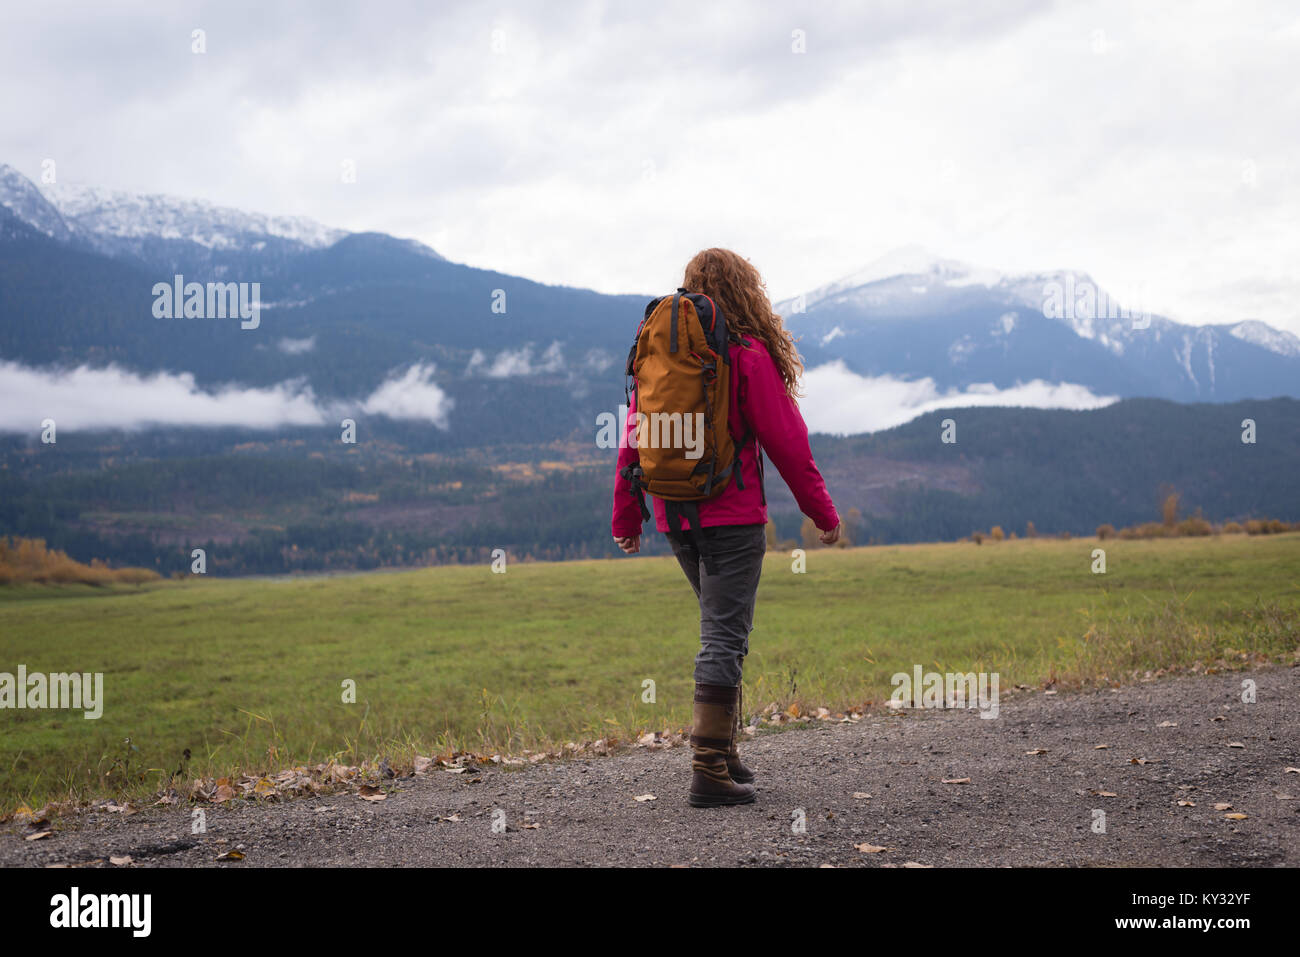 Woman walking on a dirt track against snow clad mountain and landscape - Stock Image